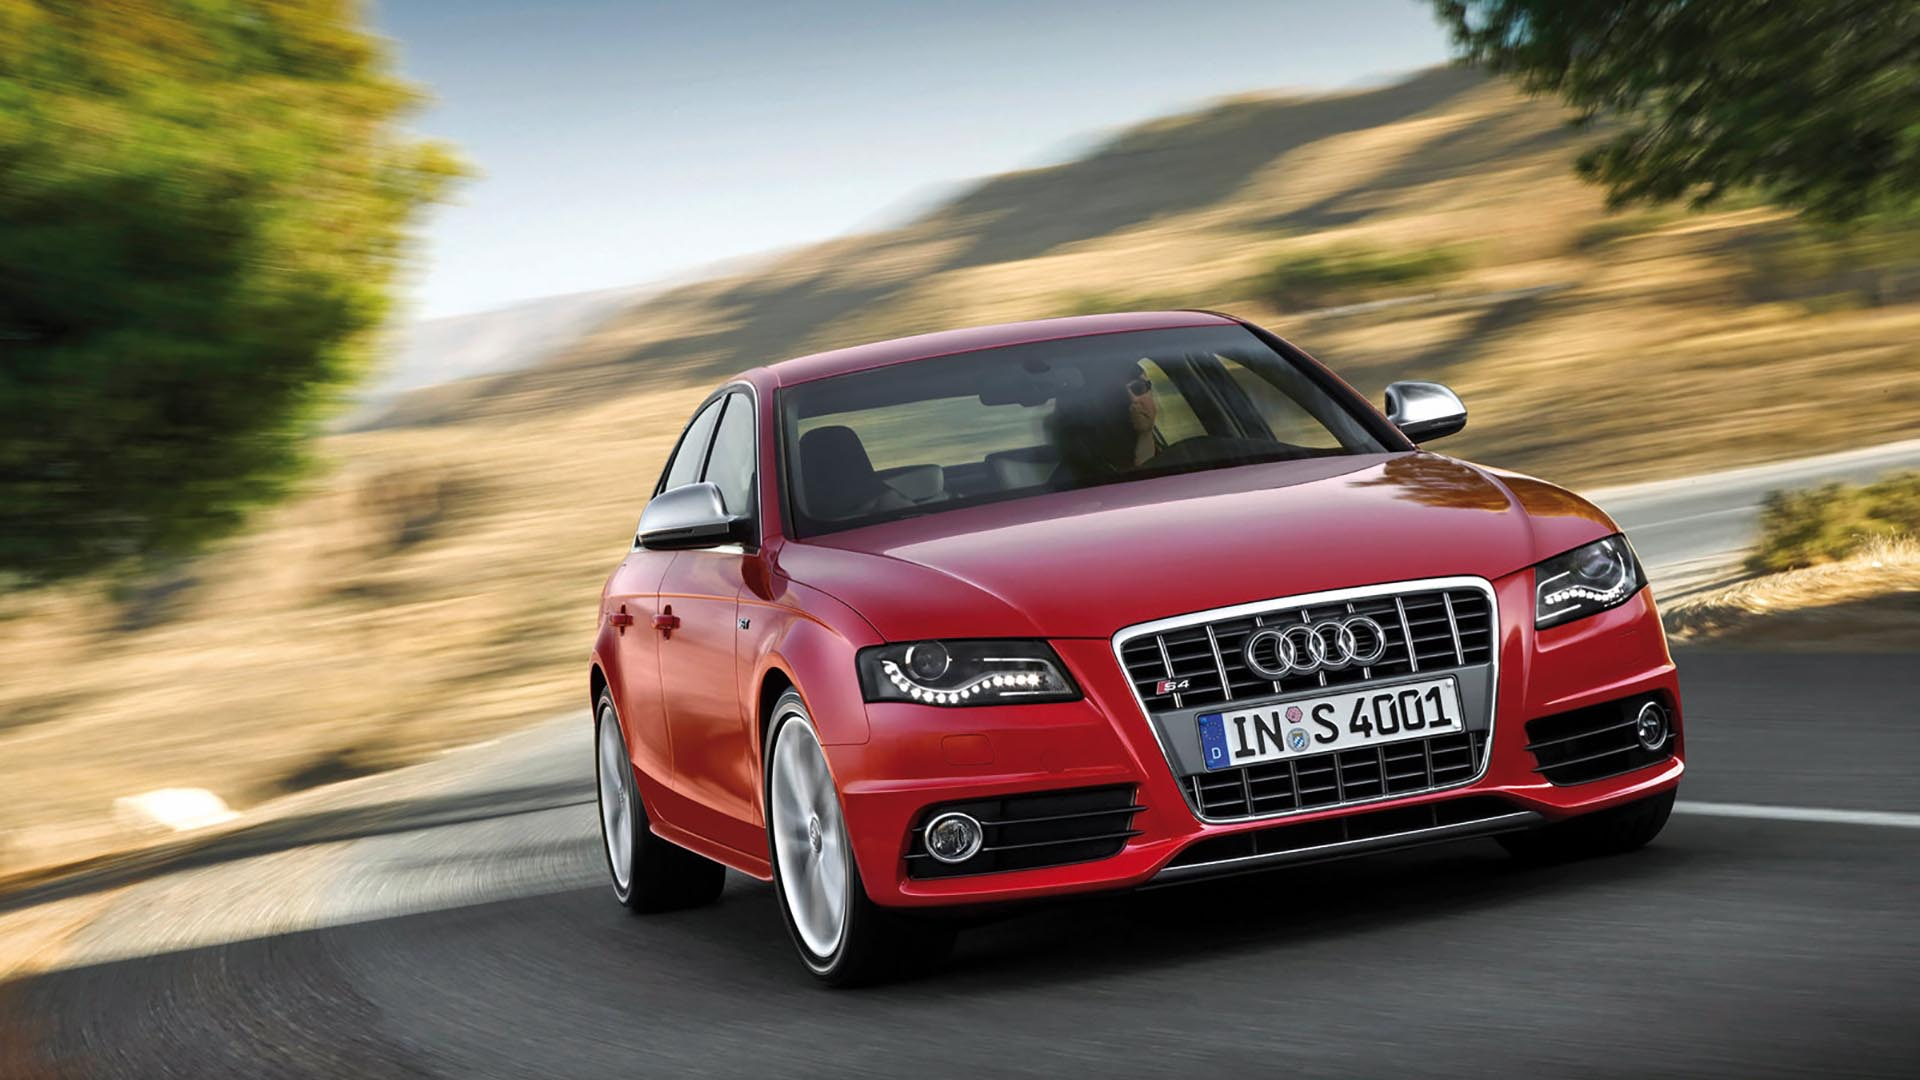 Five Reasons To Buy An Audi S4 Over An Audi A4 (B8/B8.5)